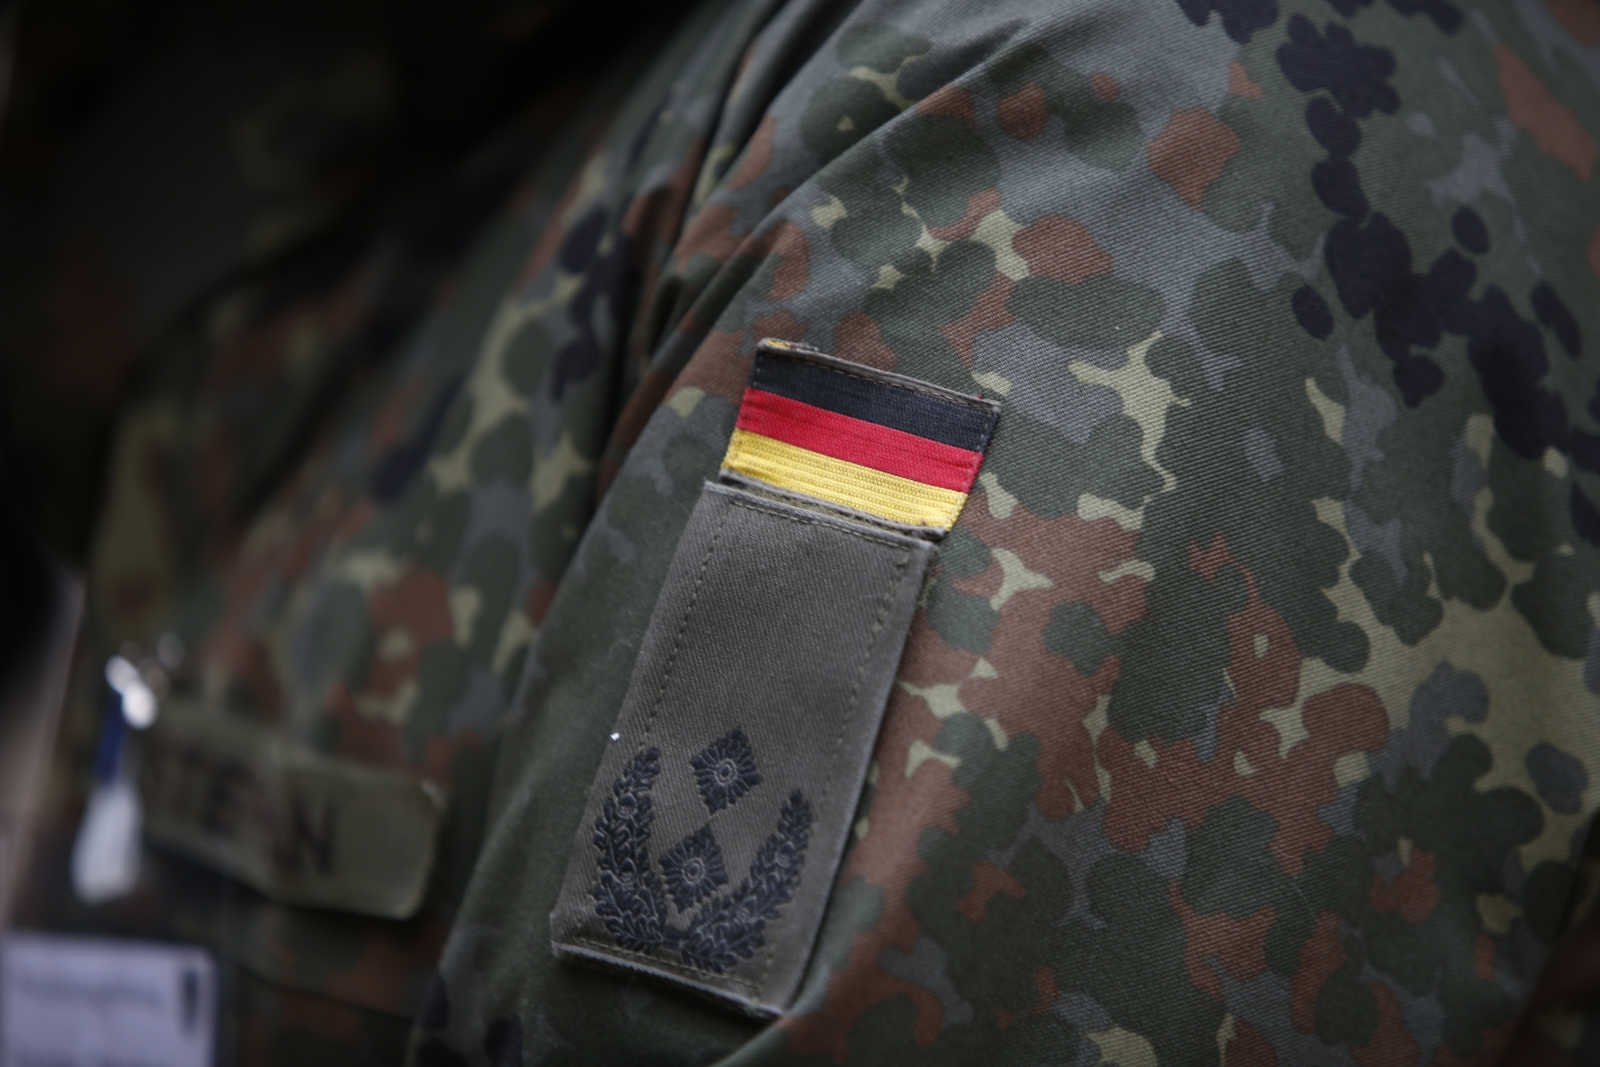 German soldier arrested on suspicion of planning attack